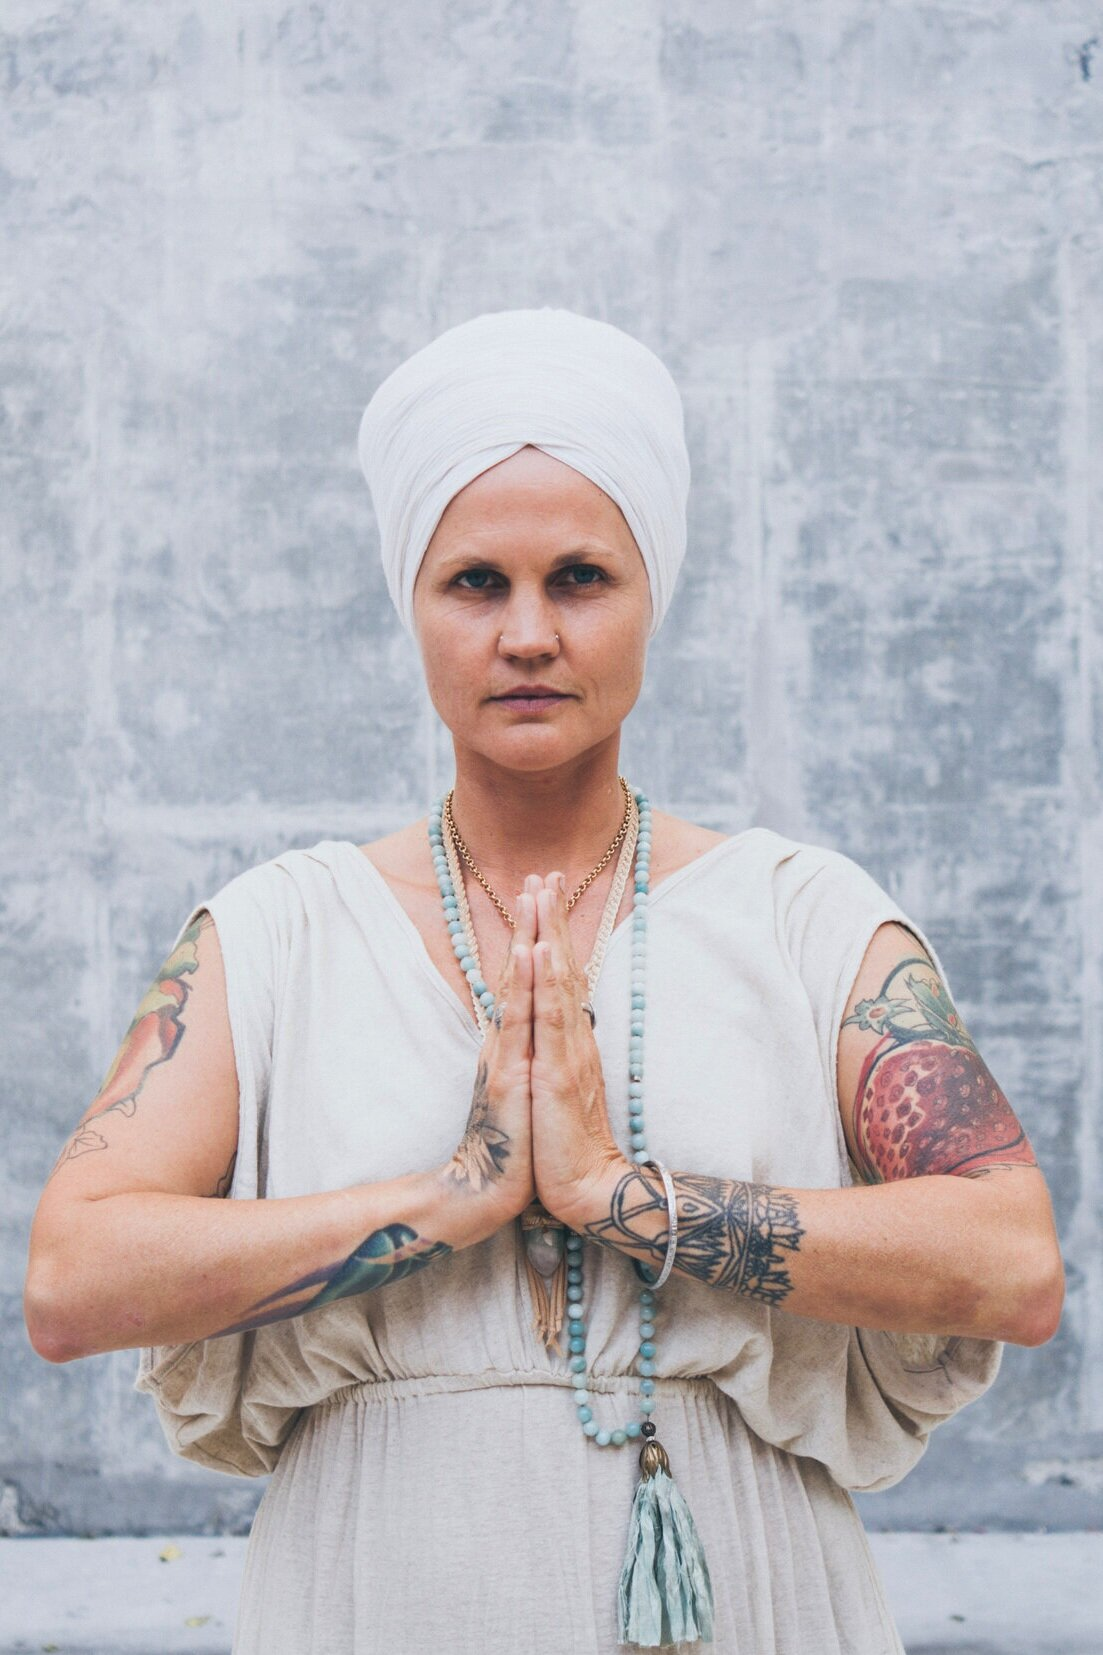 Sopurkh Kaur - Sopurkh has been teaching for as long as she has been here on Planet Earth. She is a certified Kundalini Yoga instructor, sharing the authentic teachings of Yogi Bhajan for over 14 years. Rich in yogic philosophy, powerful kriyas, and deep meditative experiences, her classes are opportunities for expansion and awakening. Sopurkh enjoys the benefits of Kundalini in every aspect of her life, and is dedicated to helping others reach their true potential.She is mother to Isis and partner to Dawna. The three live in Long Beach, CA where they have created two thriving raw food restaurants, Under the Sun Cafe and Rainbow Juices.